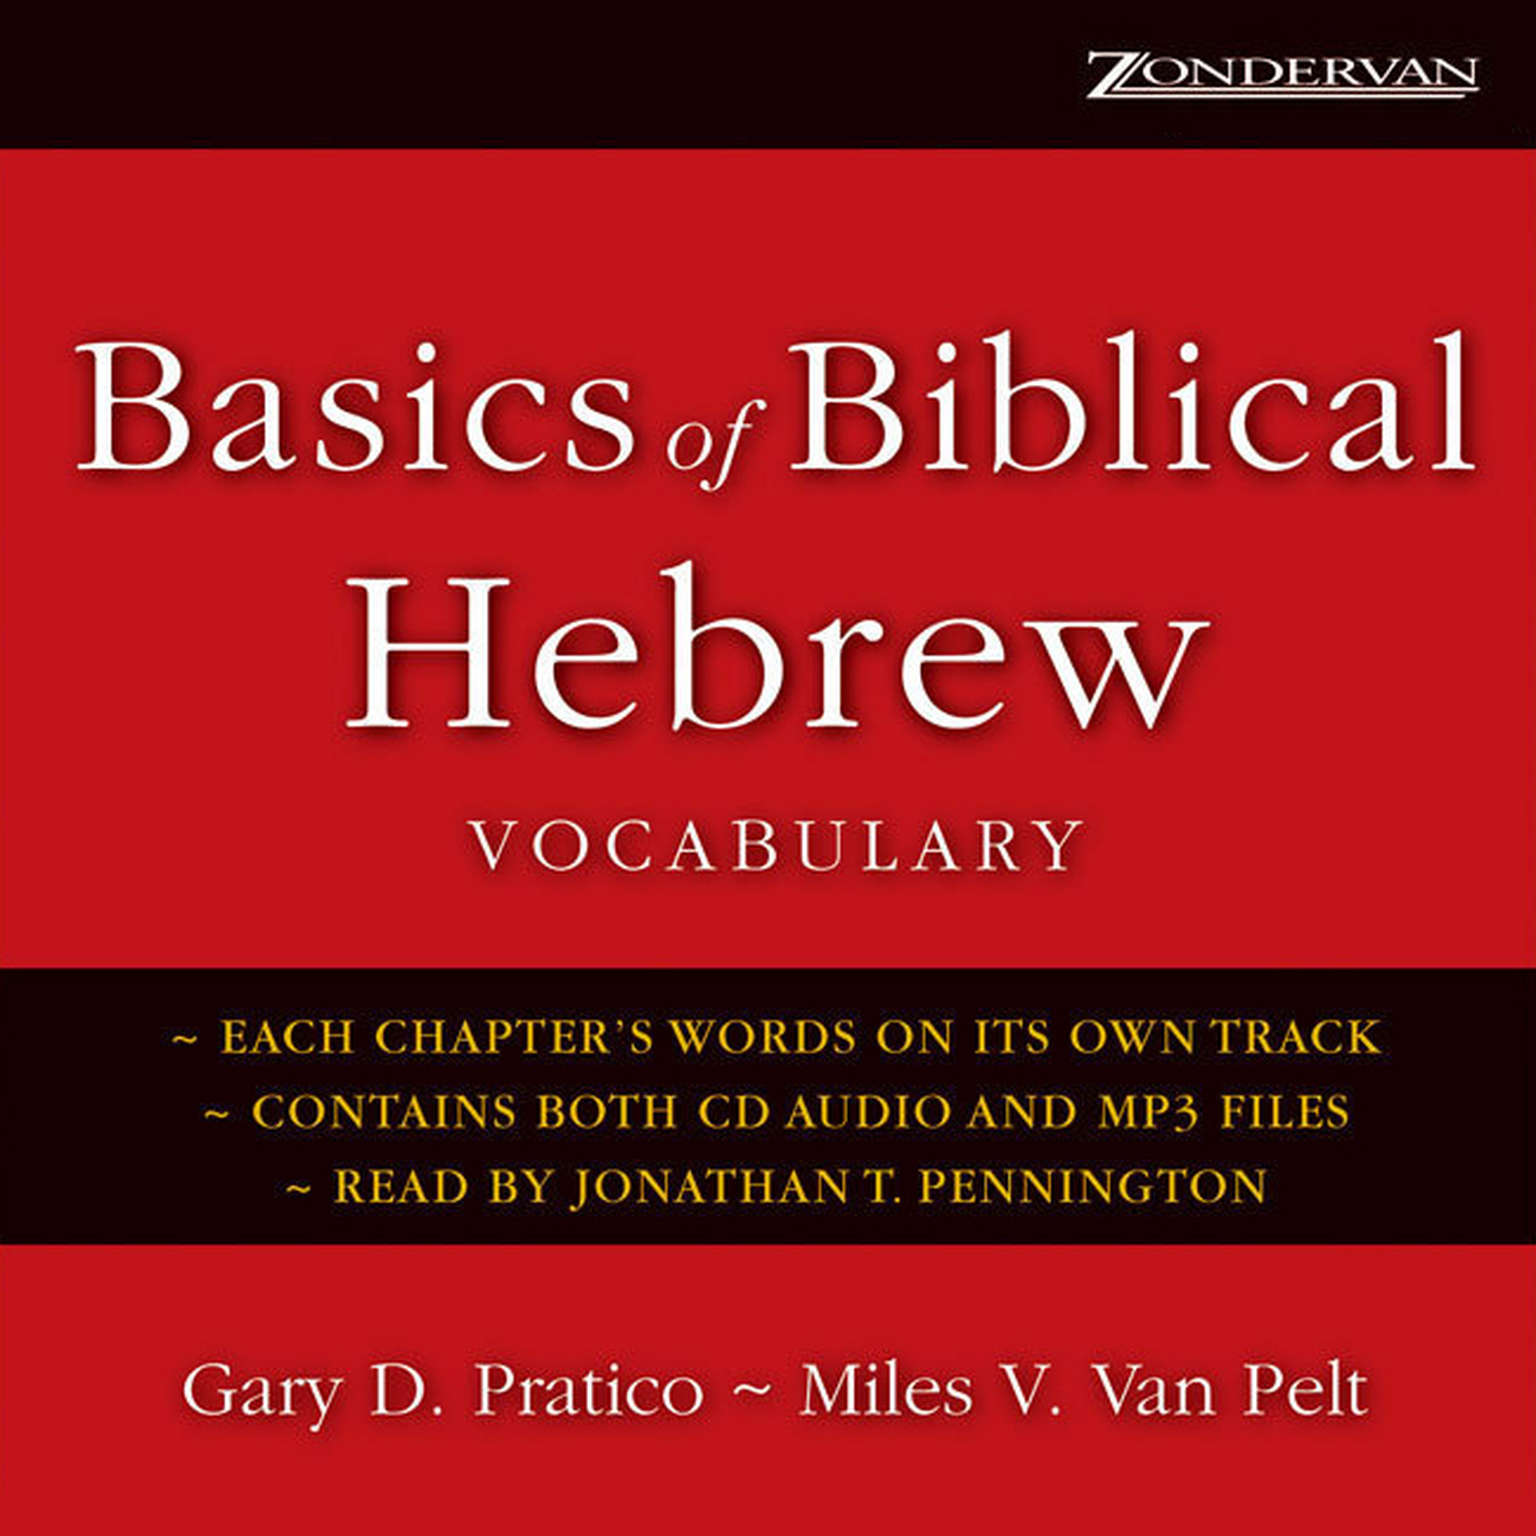 Printable Basics of Biblical Hebrew Vocabulary Audiobook Cover Art